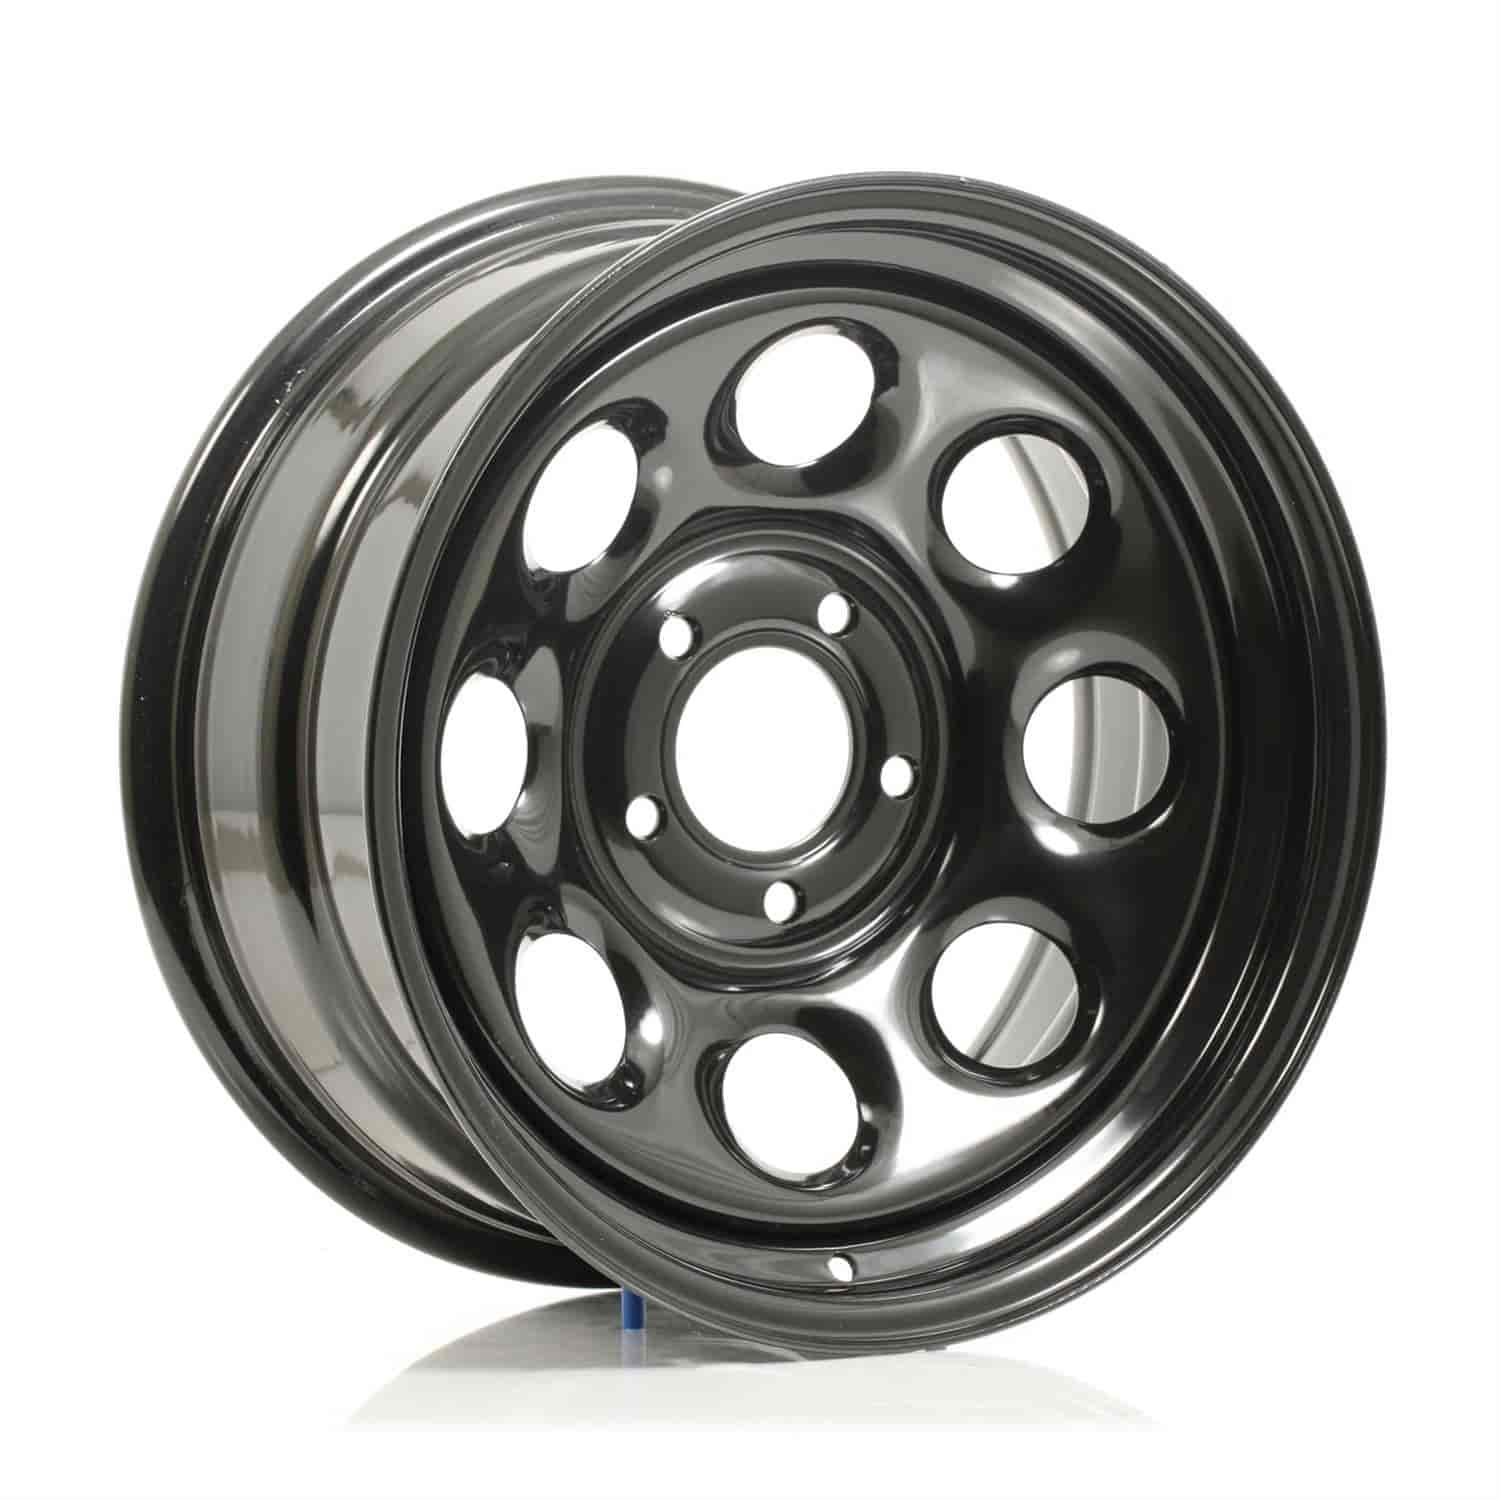 Cragar 3978850 - Cragar Black Soft 8 Wheels